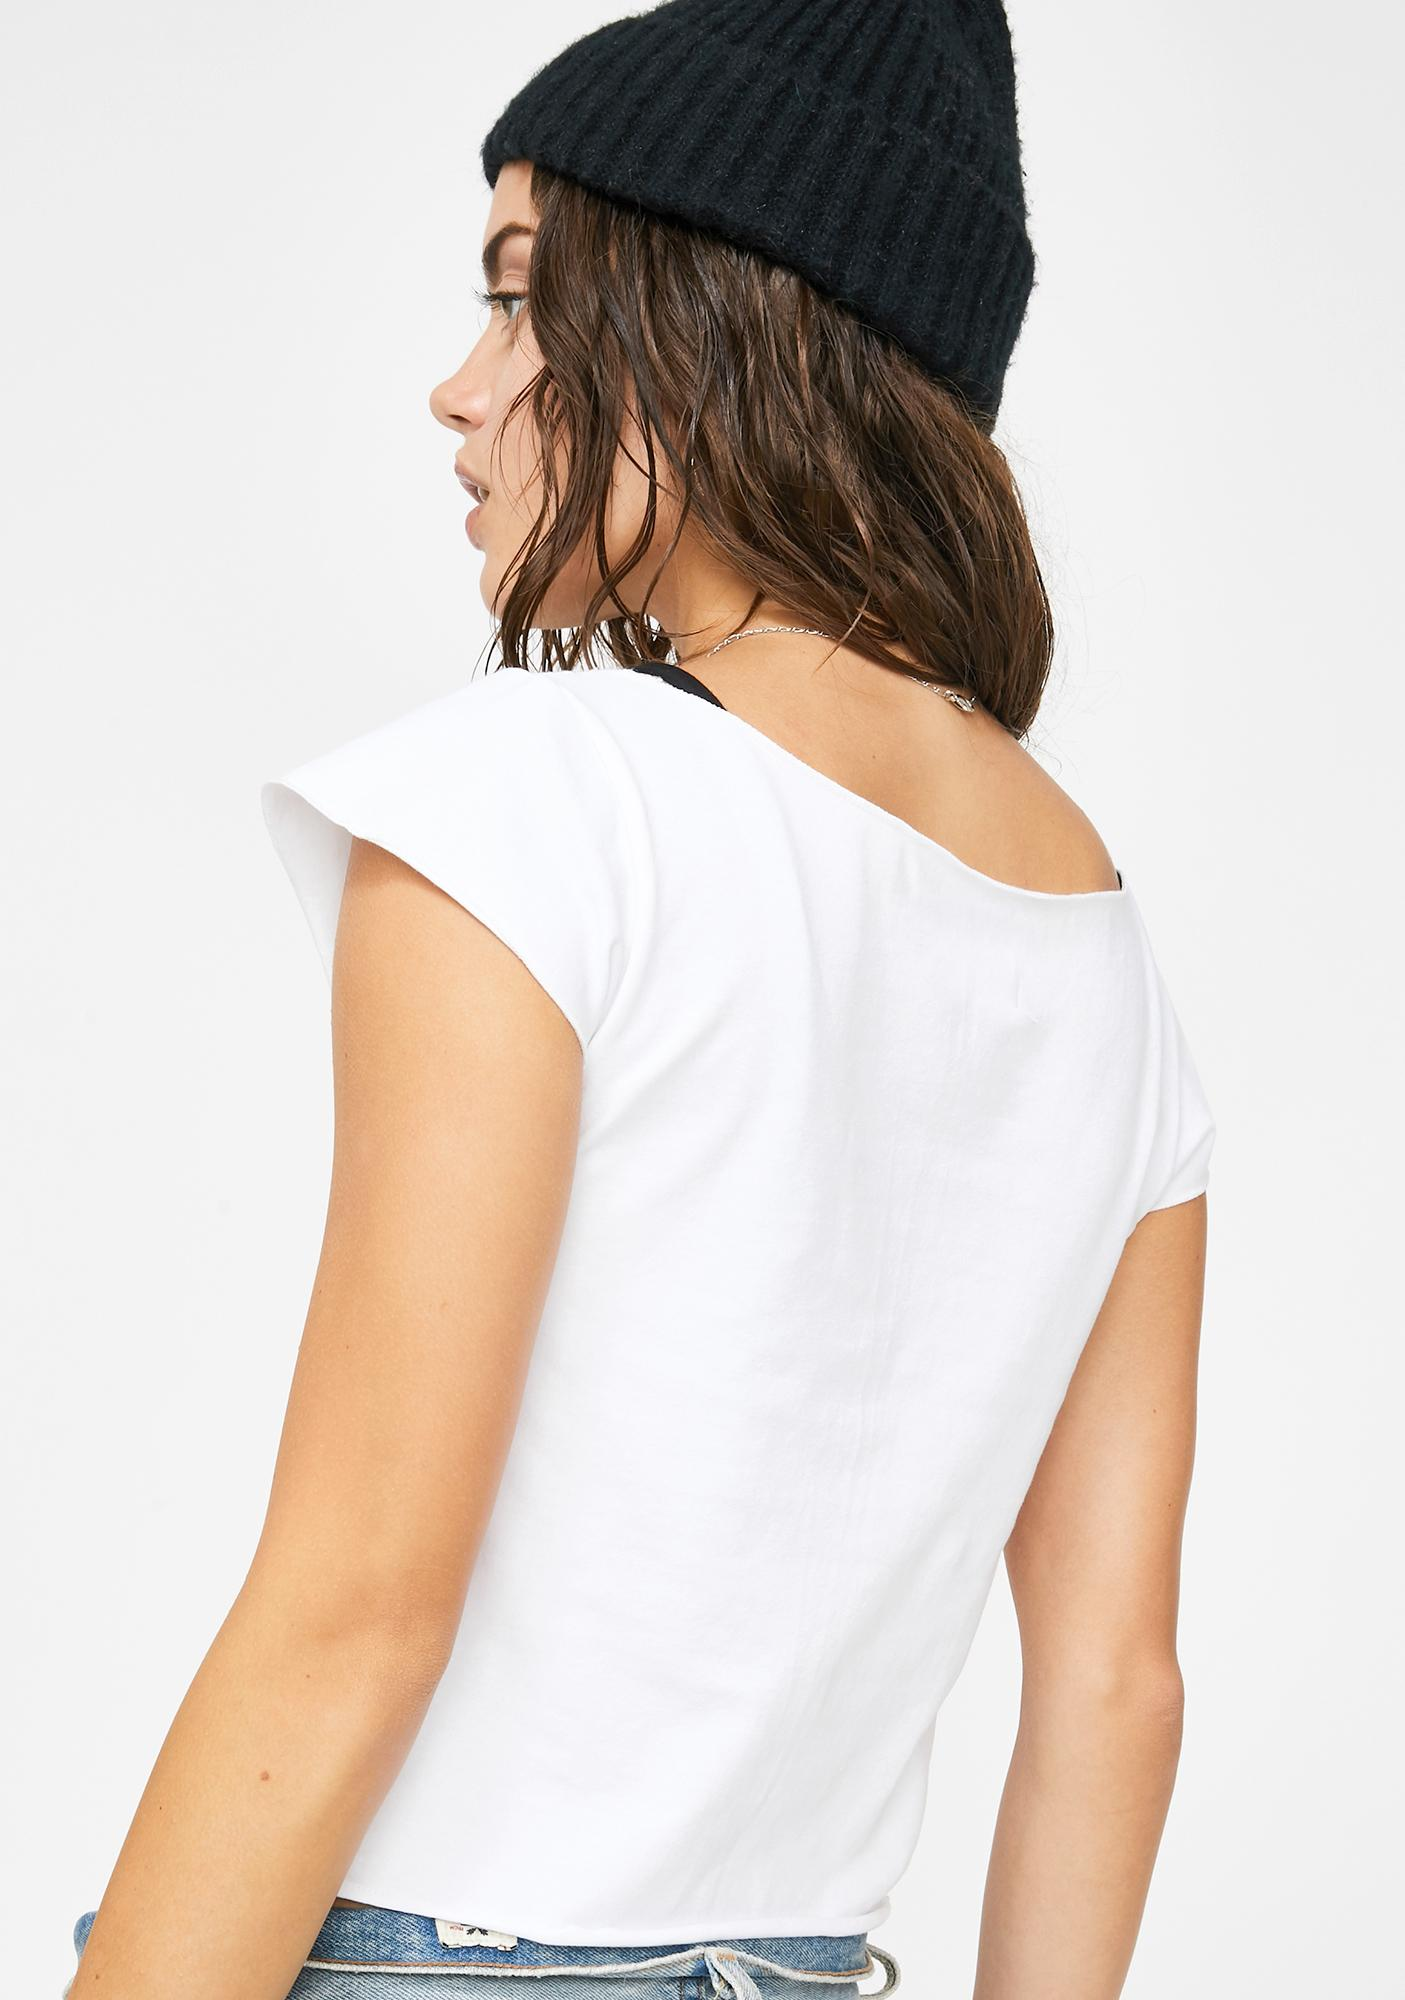 Why Not Us Butterfly Graphic Tee